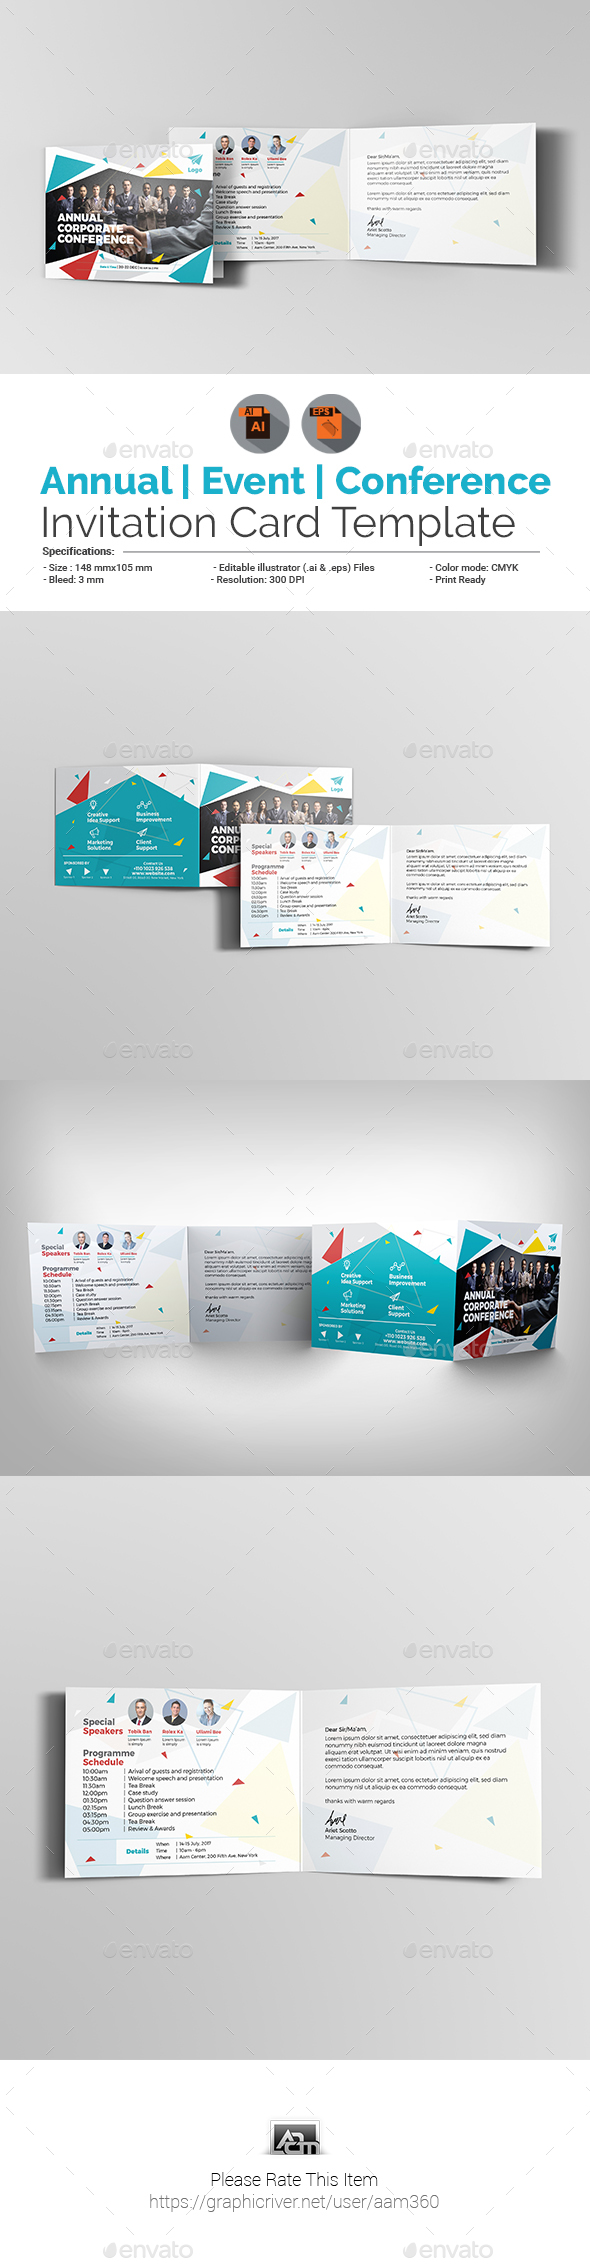 Annual Corporate Event/Conference Invitation Card - Cards & Invites Print Templates